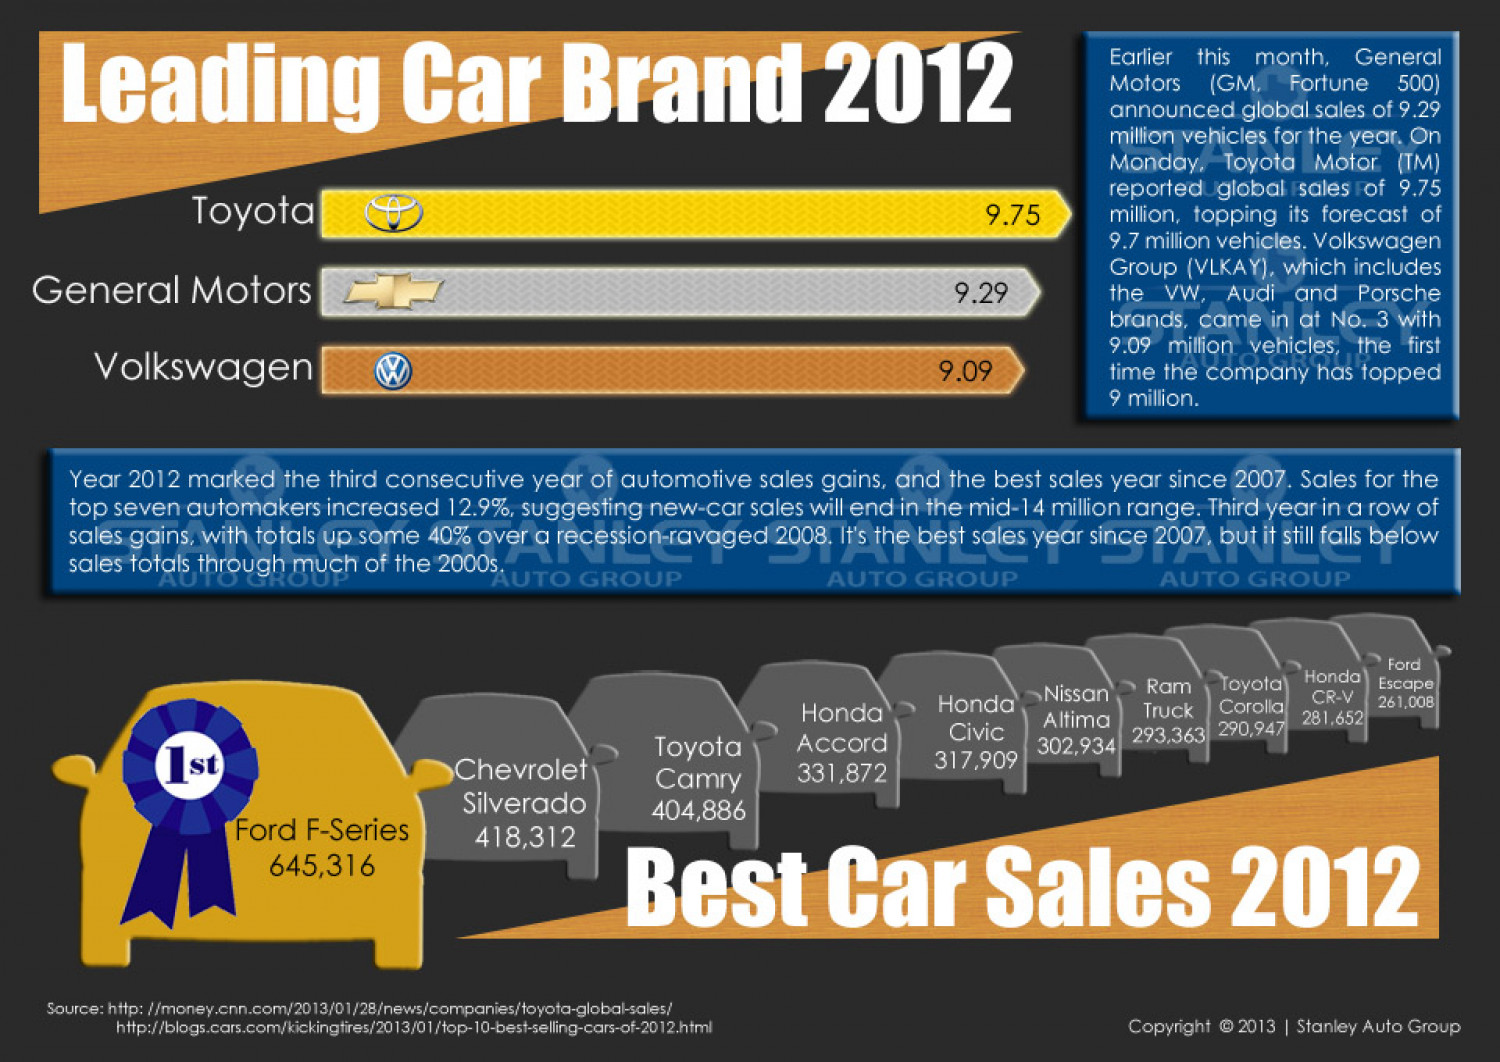 Leading Car Brands of 2012 Infographic